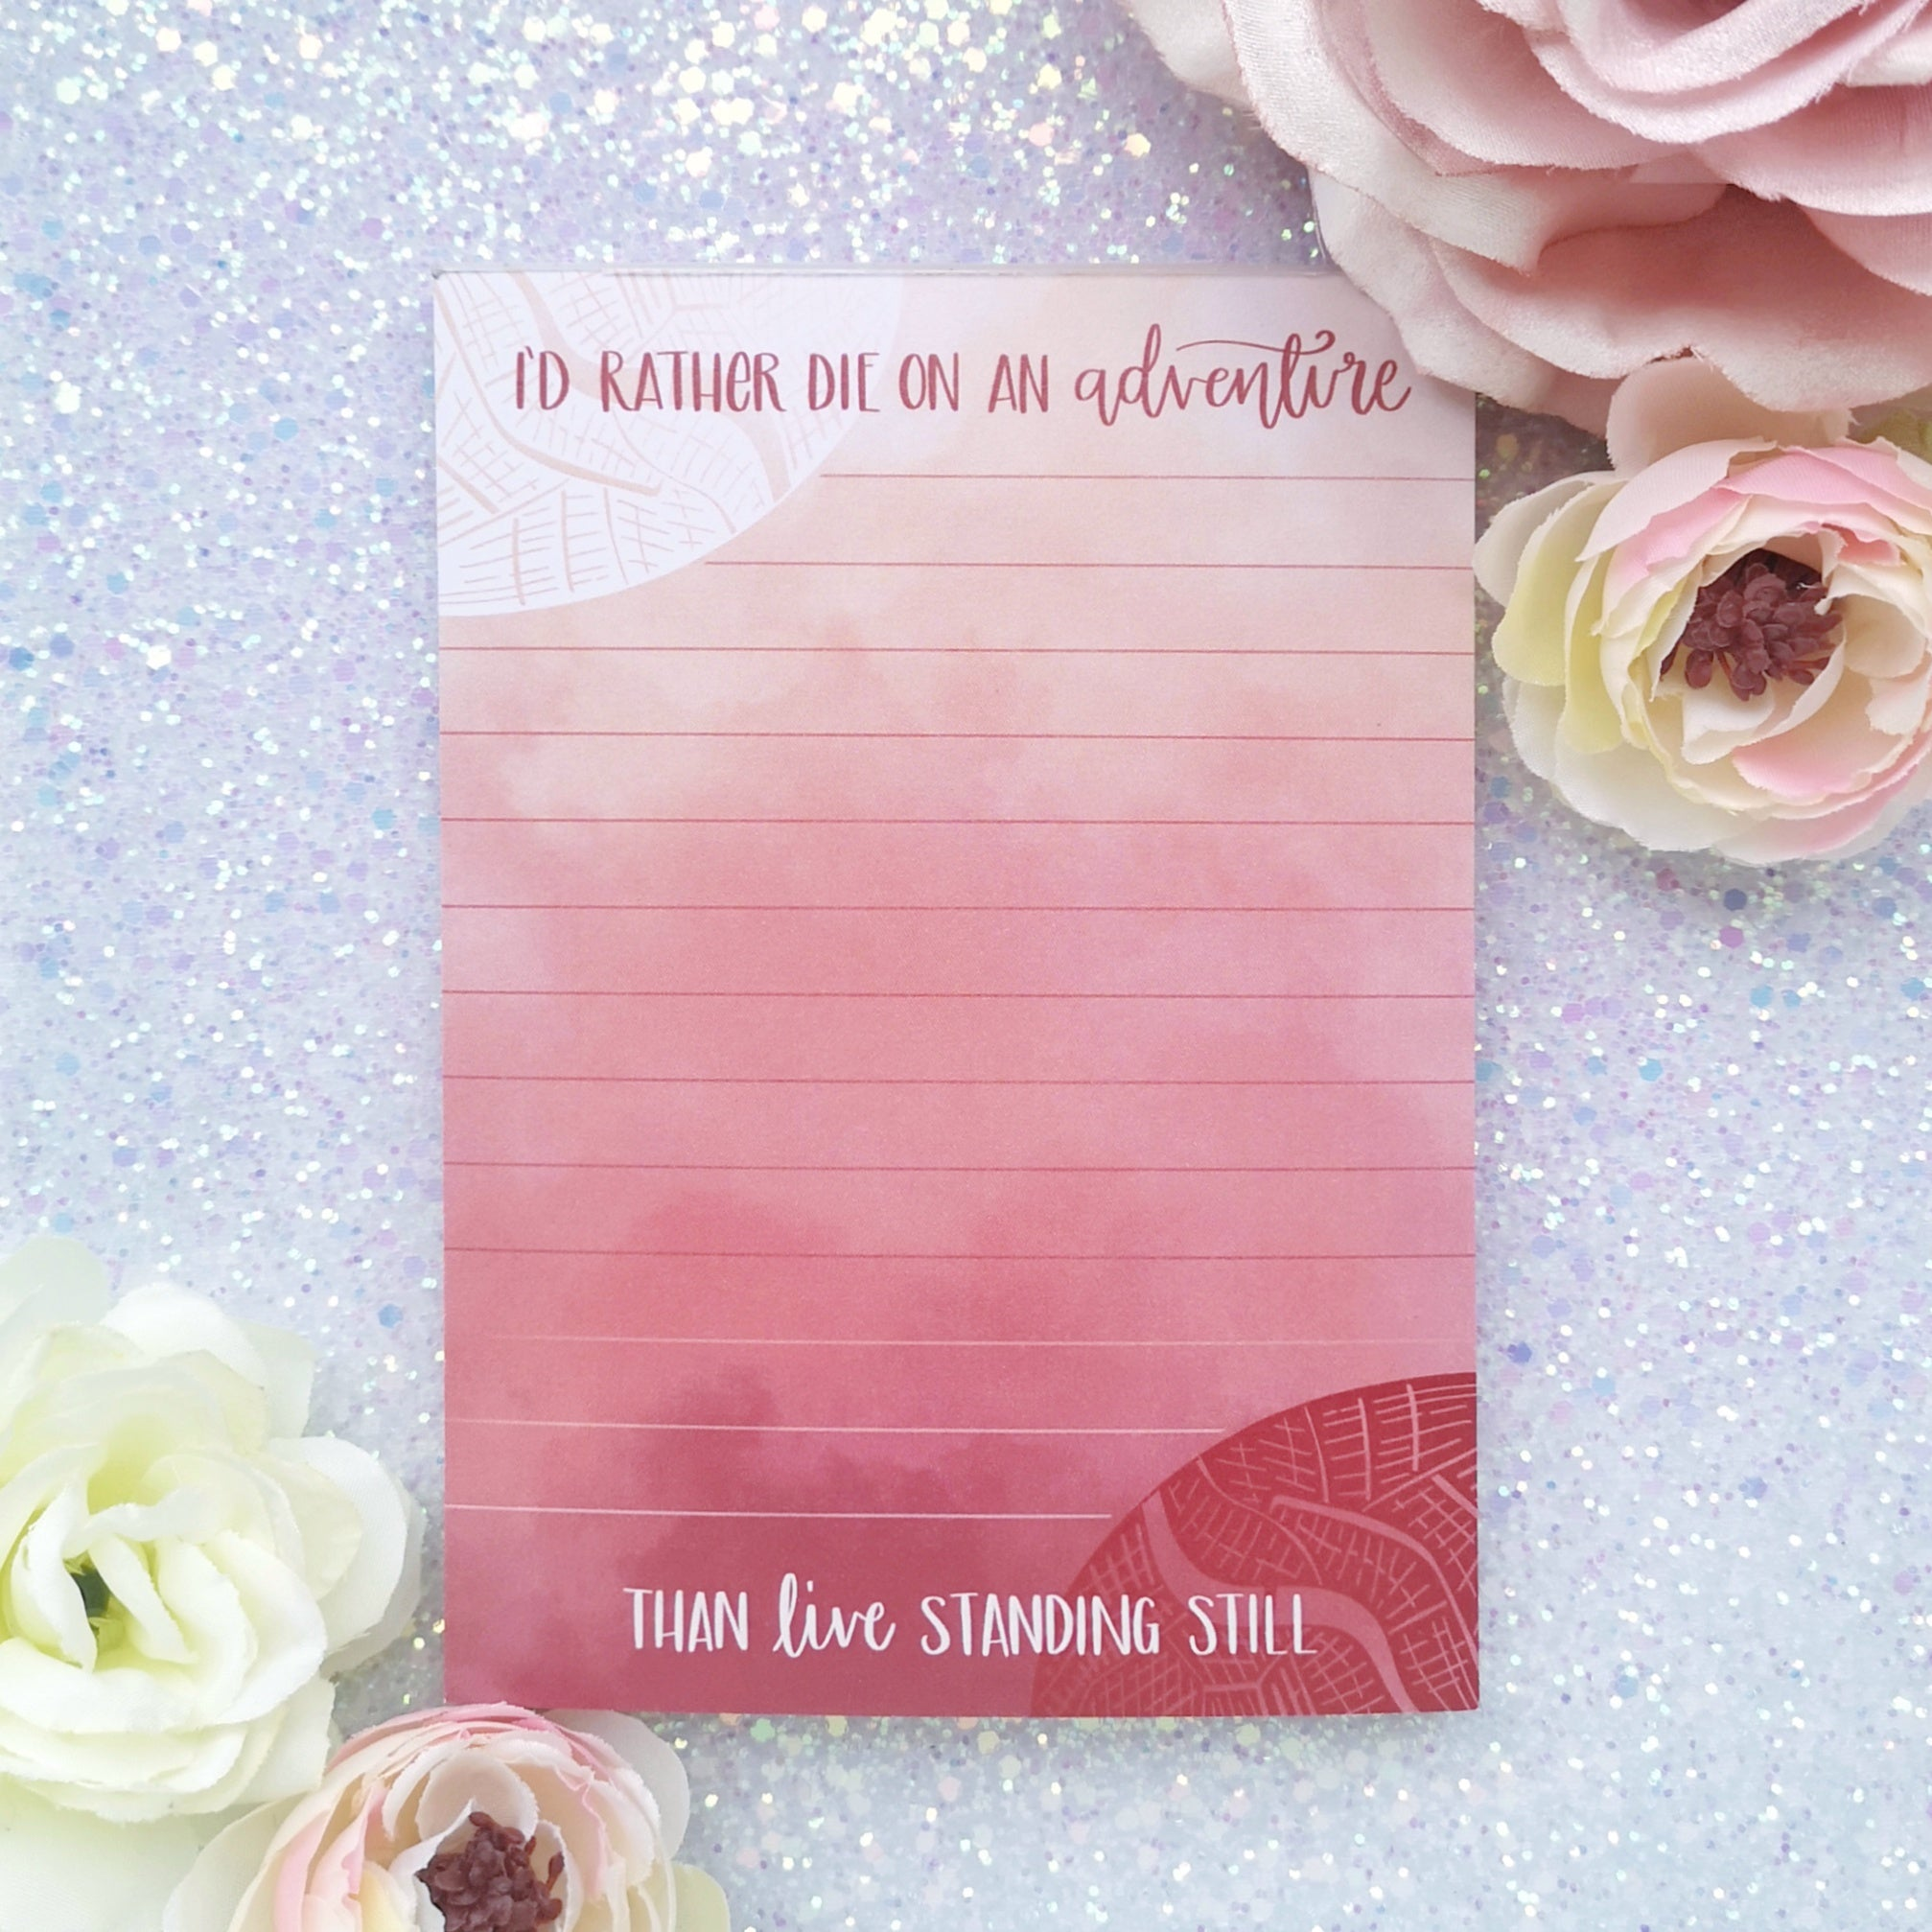 I'd Rather Die On An Adventure Quote Notepad